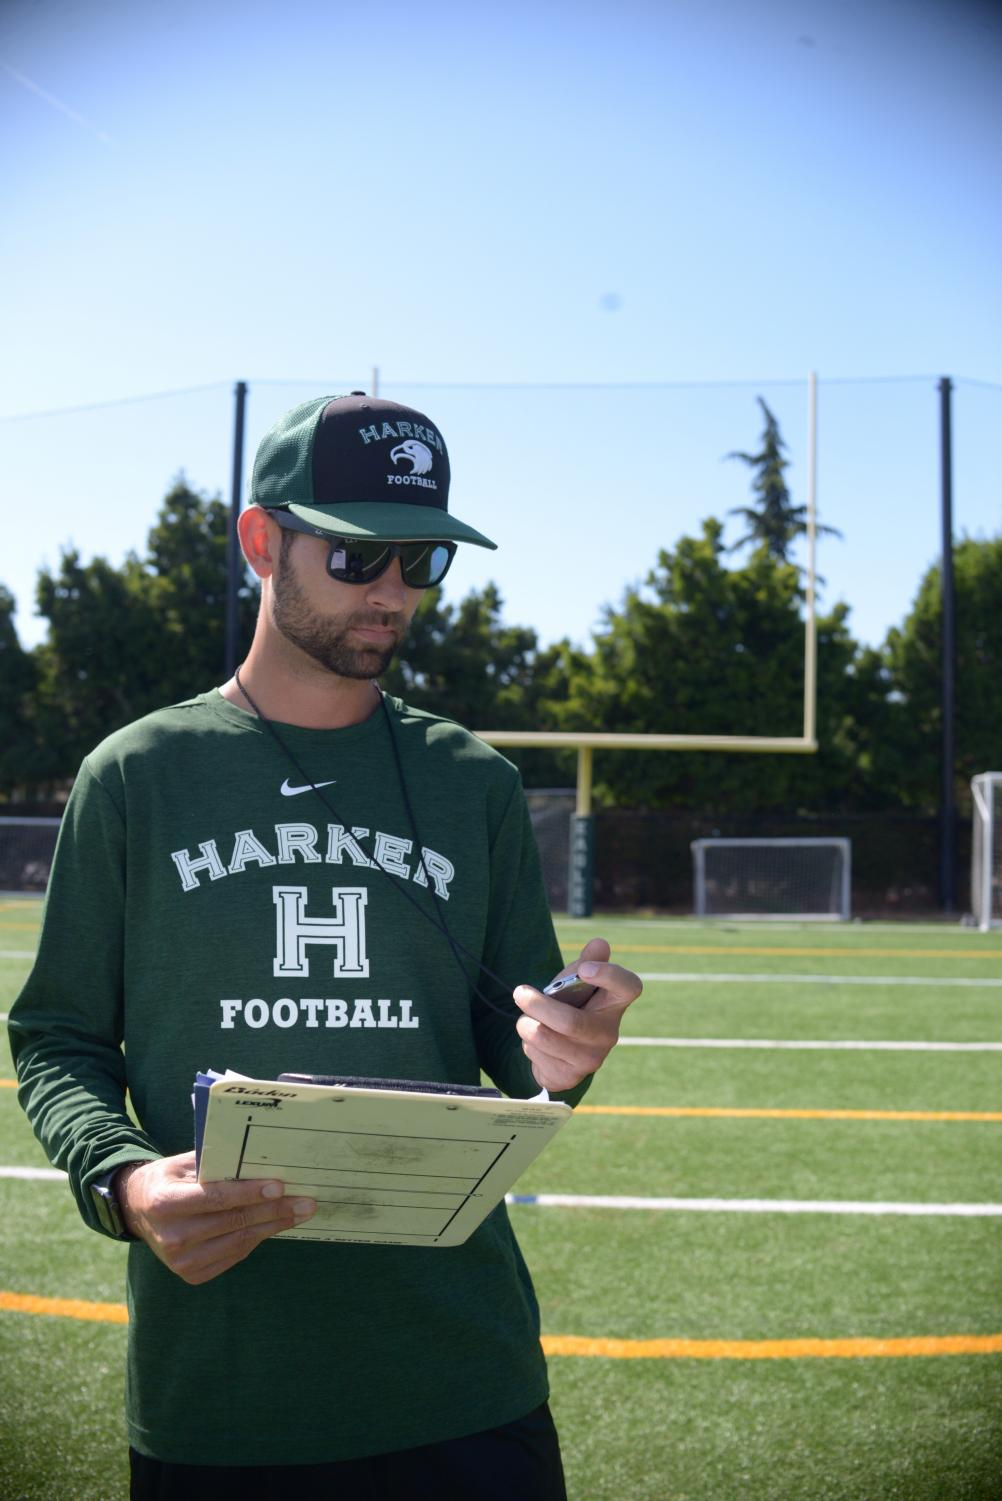 Lorem Powers looks at his stopwatch during practice while holding a clipboard in his other hand.